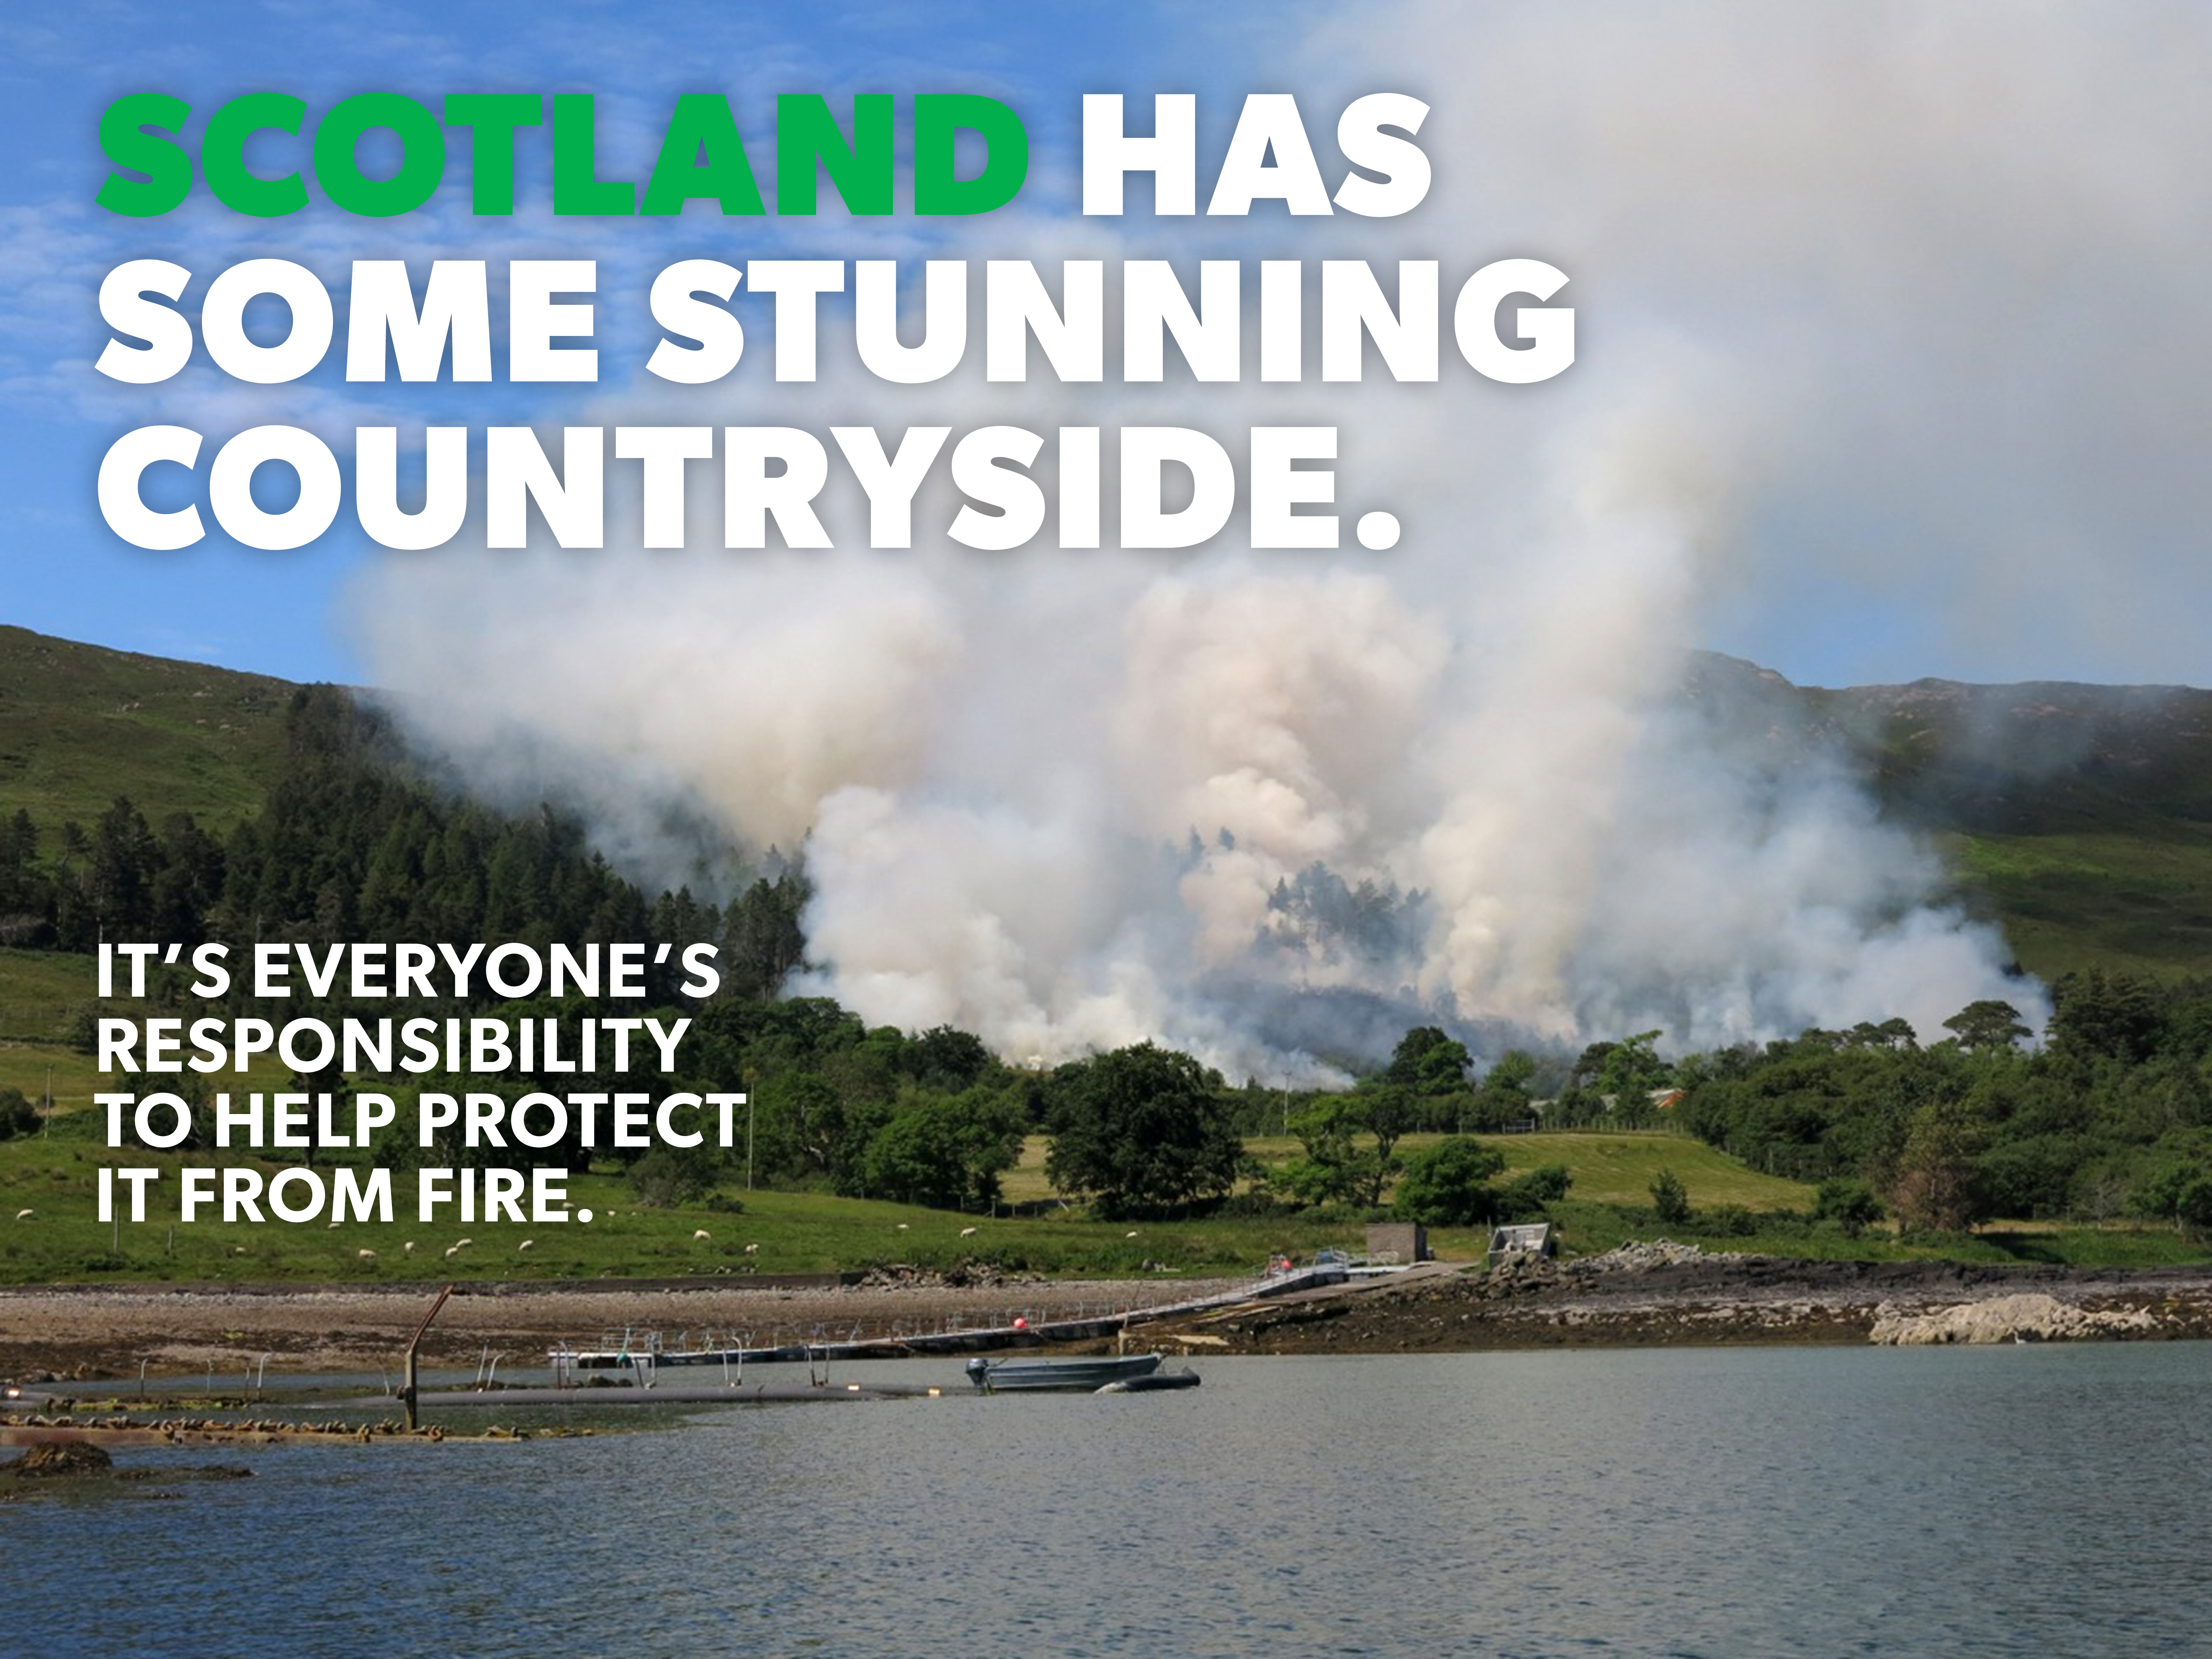 SFRS dealing with wildfire in Lews Castle area of Stornoway